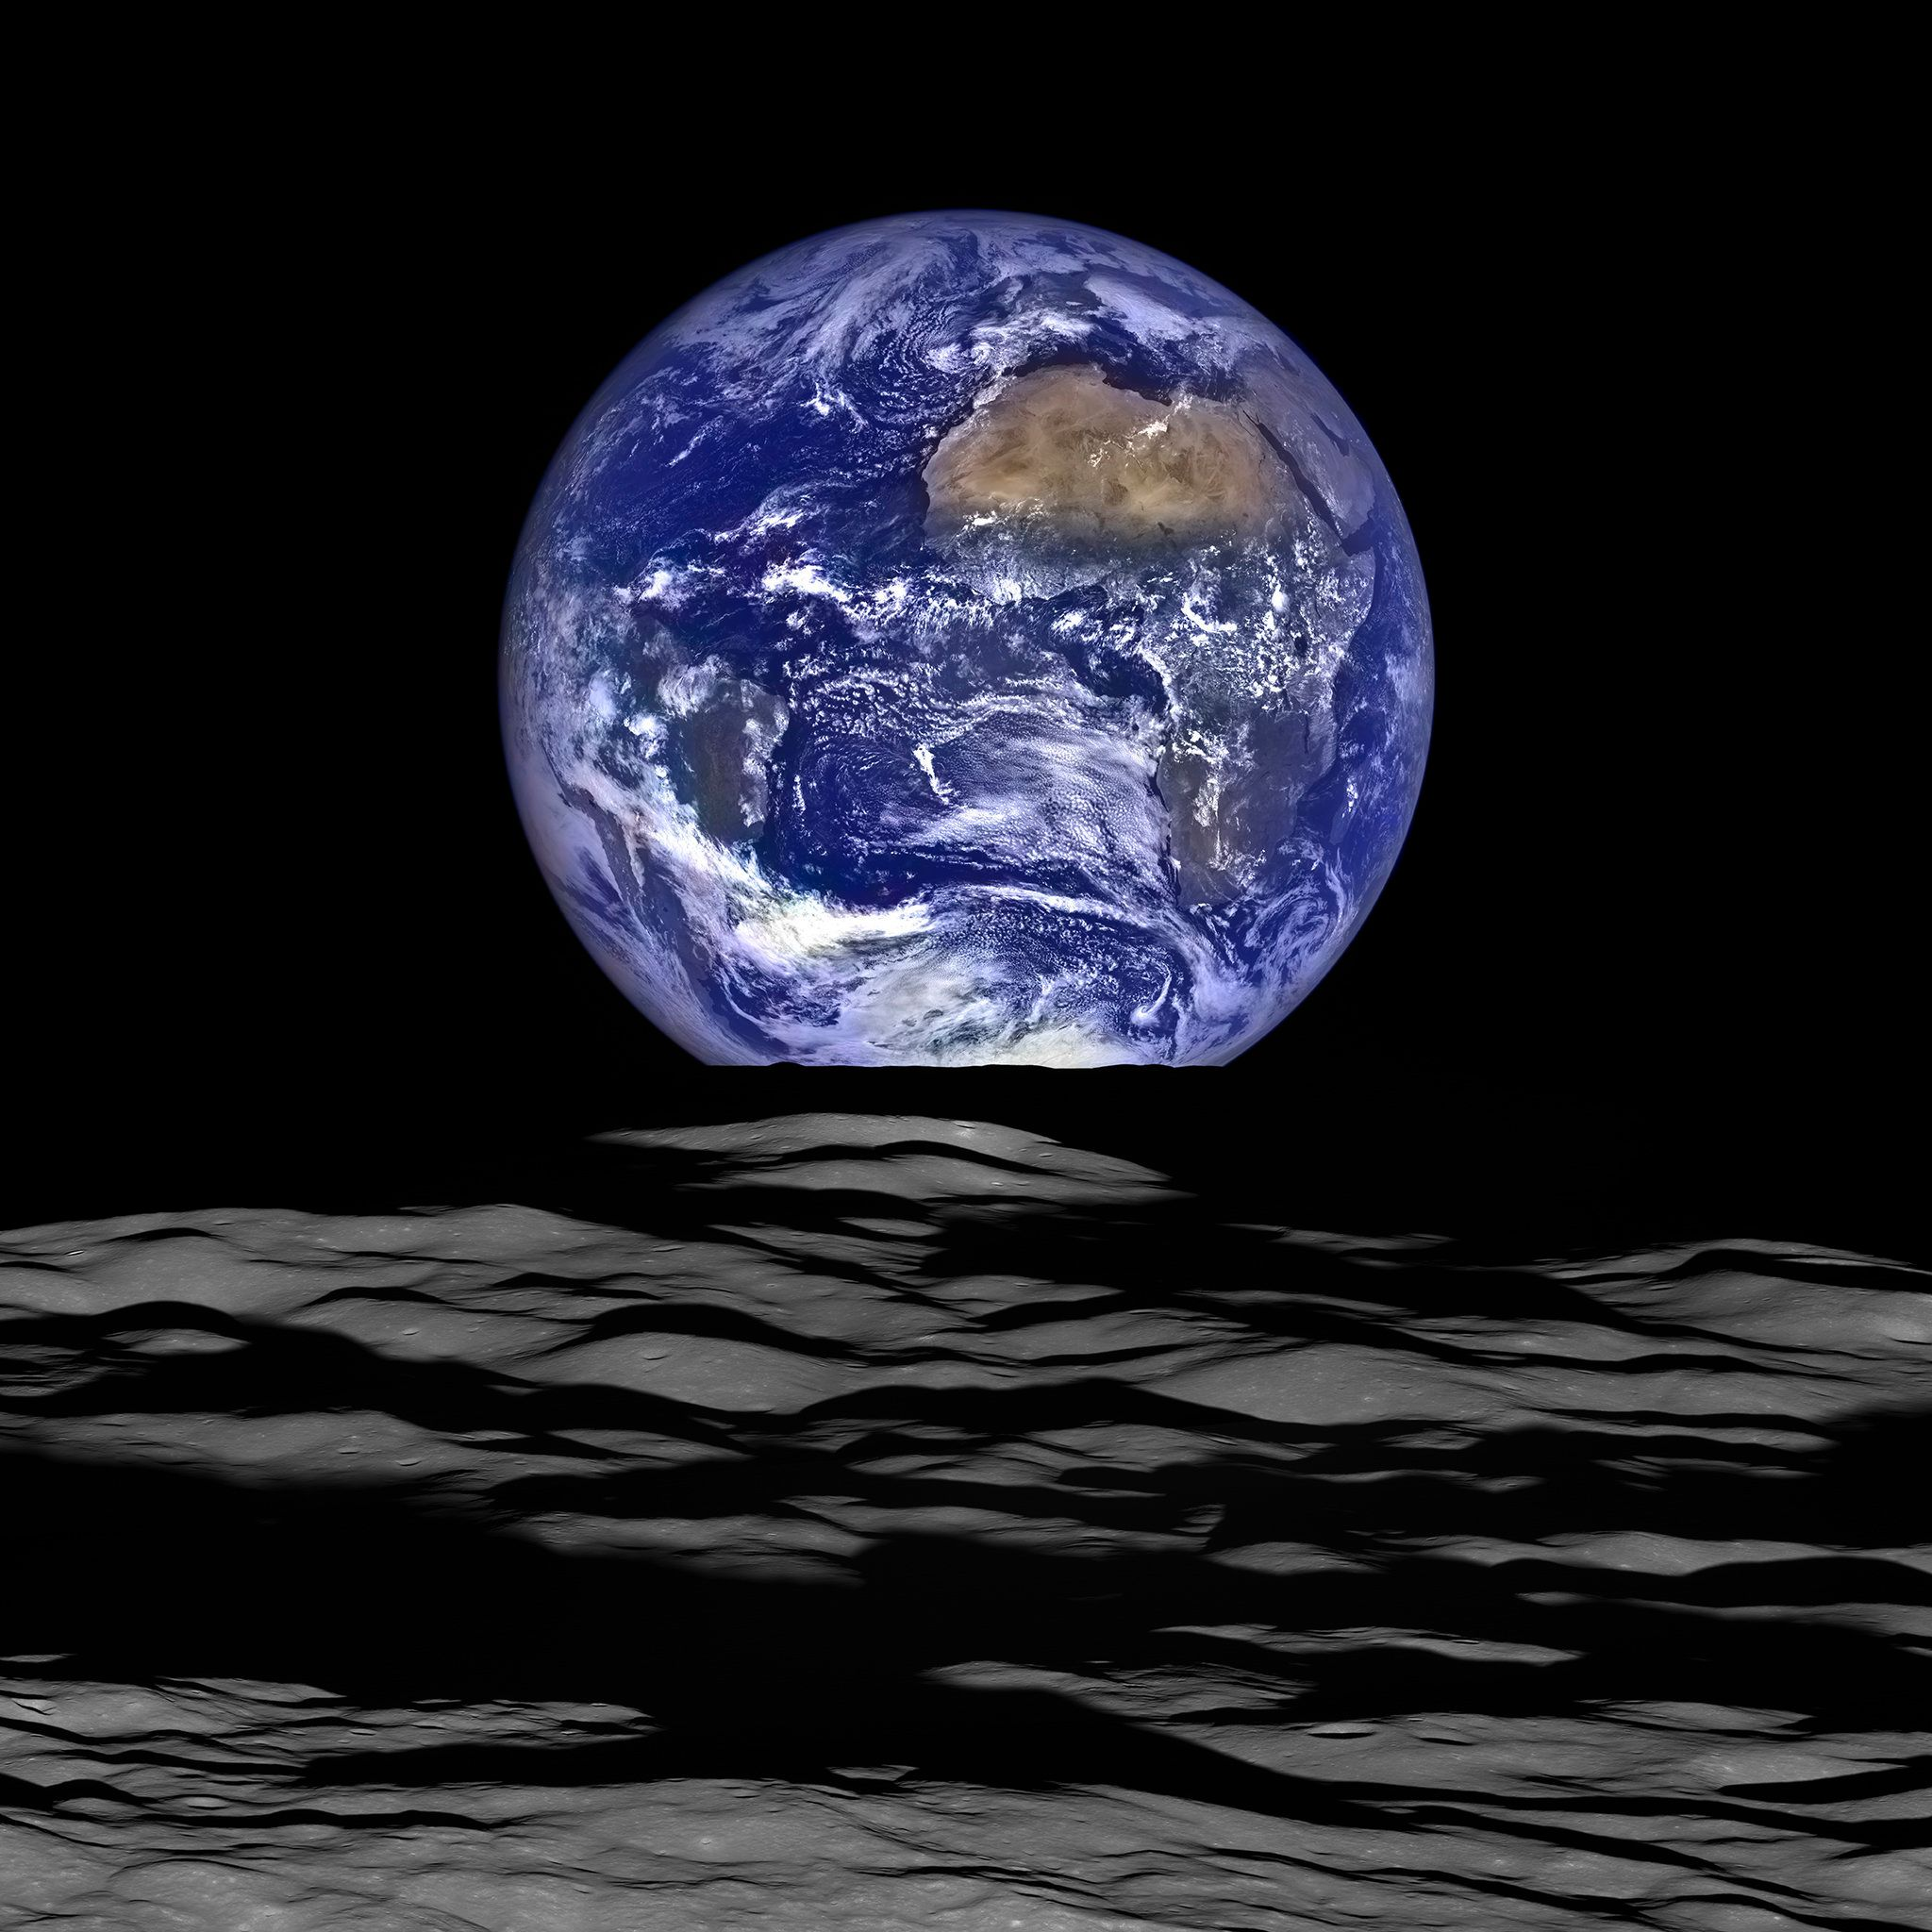 NASA's Lunar Reconnaissance Orbiter captured a unique view of Earth from the spacecraft's orbit around the moon.